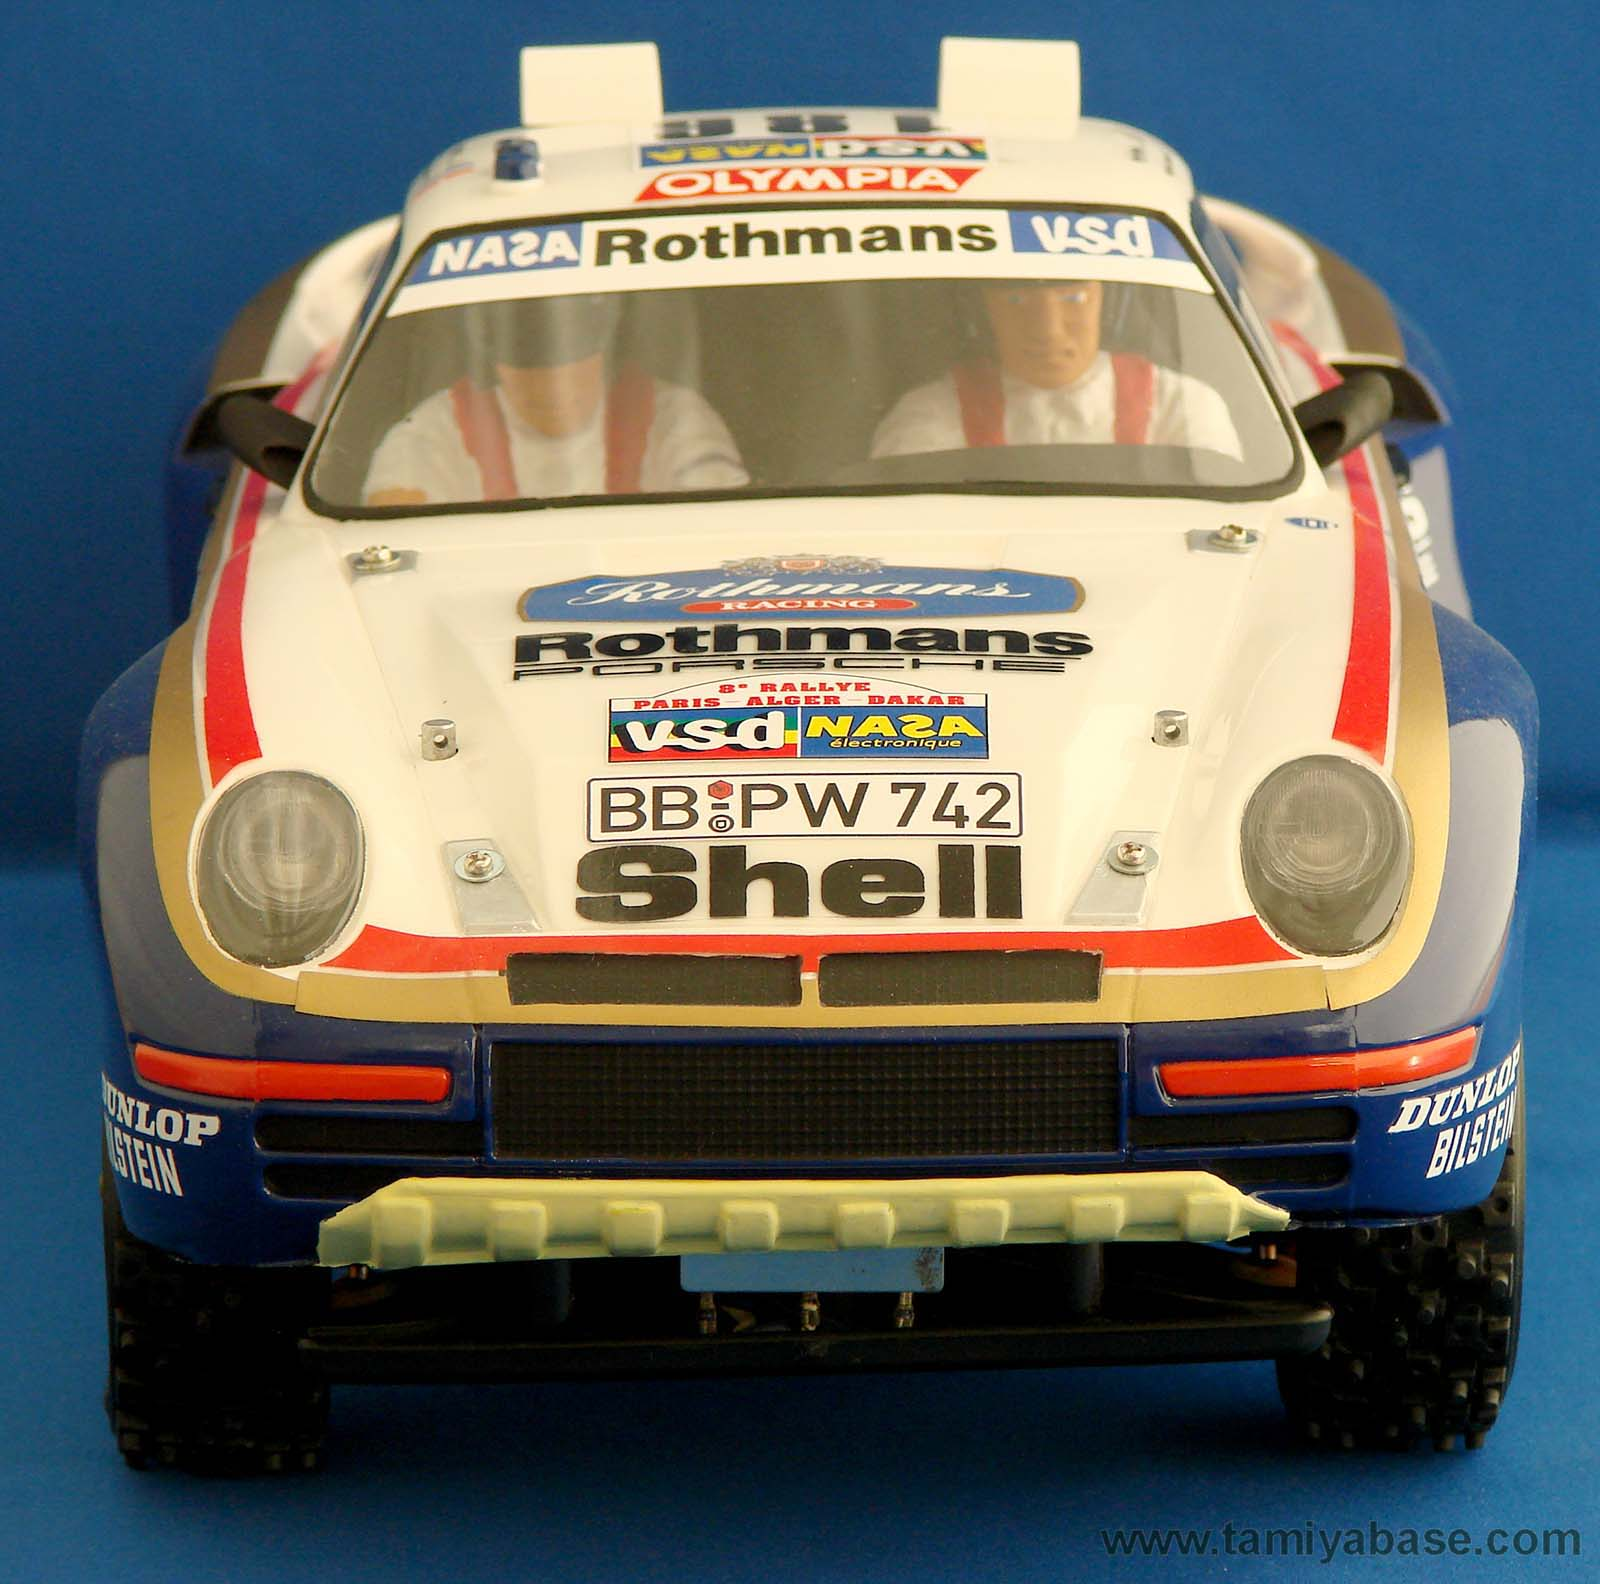 58059 Tamiya Model Database Tamiyabasecom